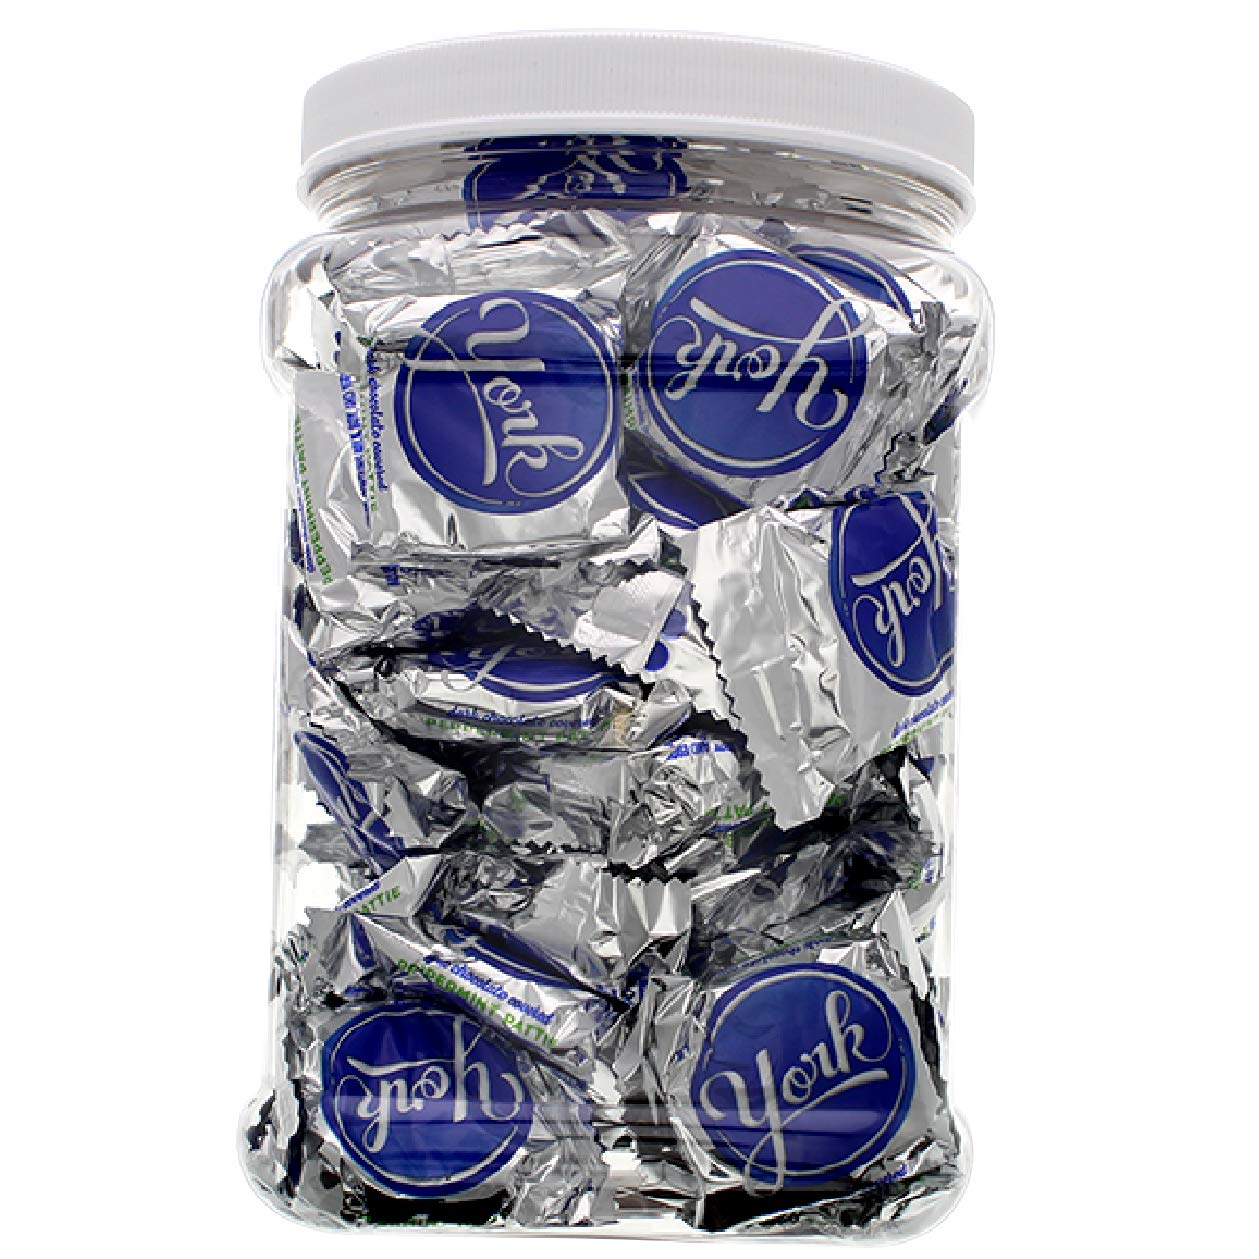 York Peppermint 70% OFF Outlet Patty Mini Candy Free shipping anywhere in the nation Bars - Bulk Packe Pound 2 Value